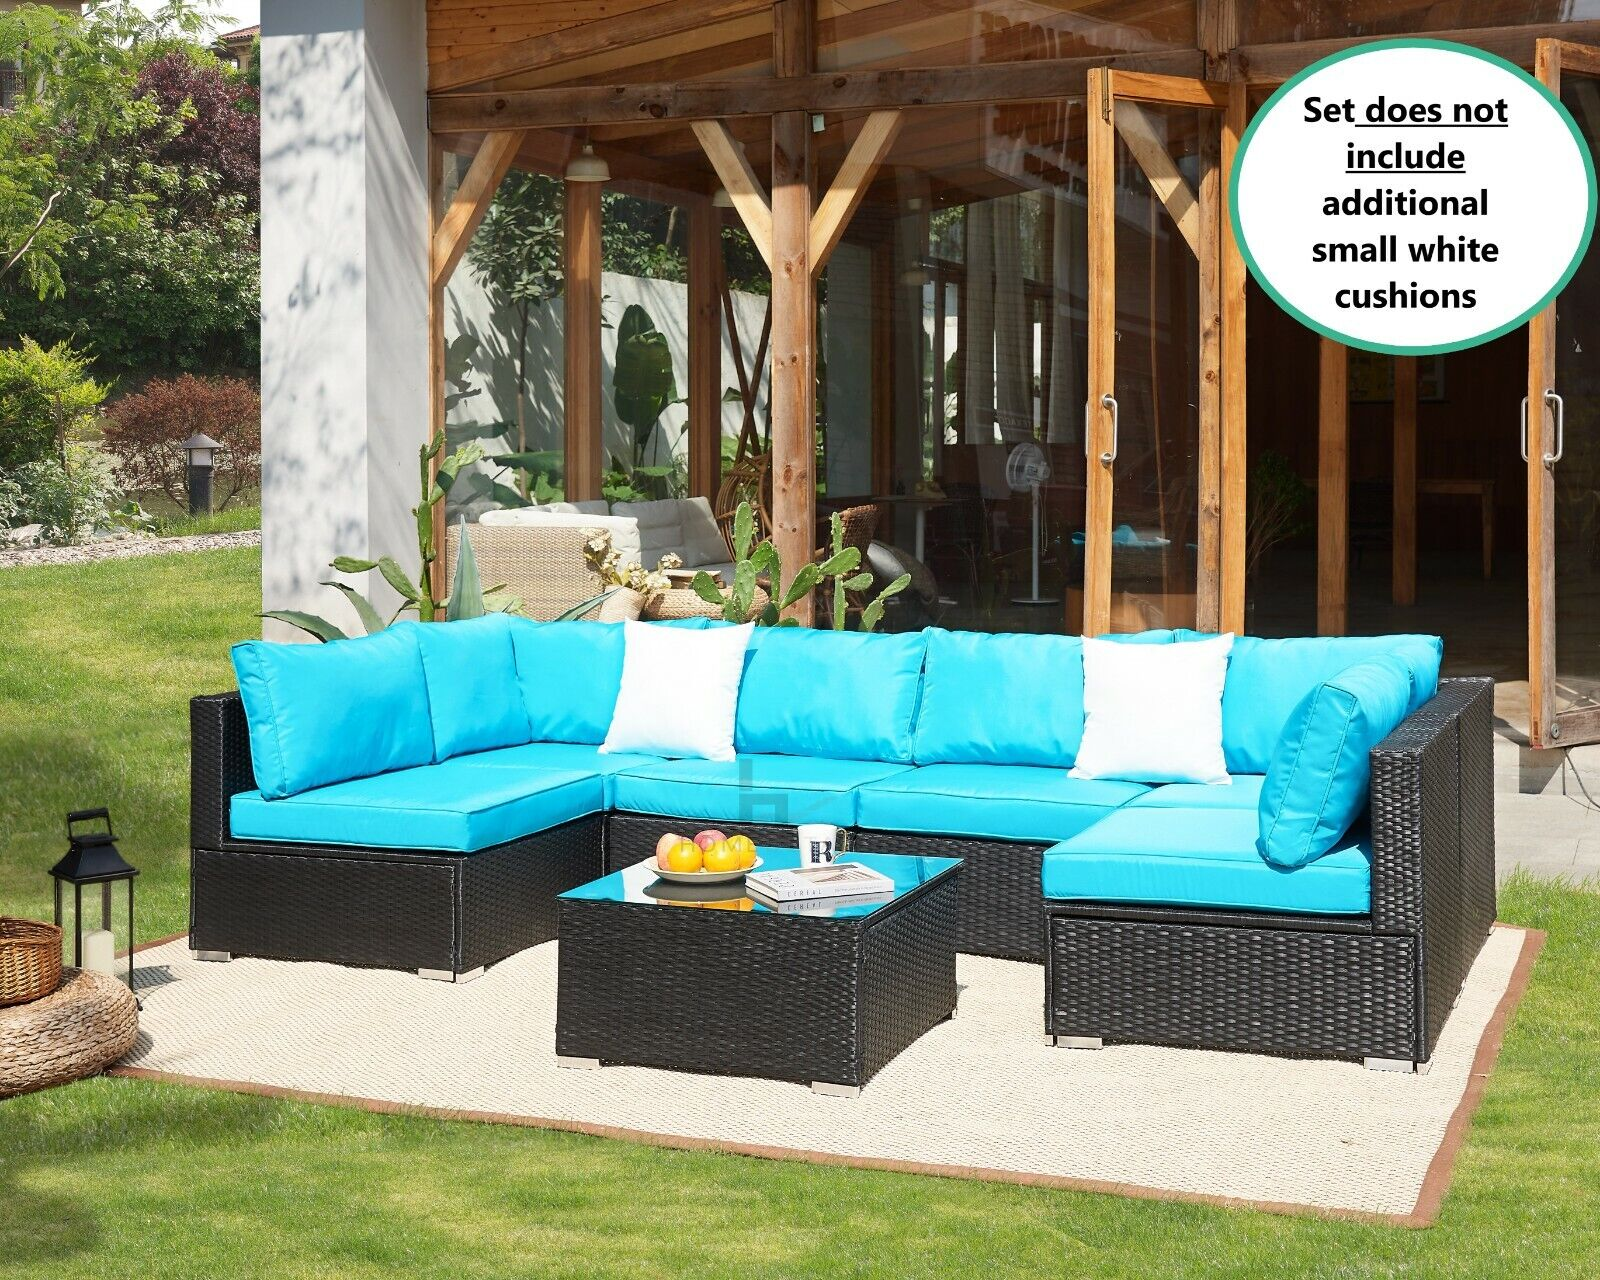 Garden Furniture - Rattan Garden Furniture Sofa Corner Set Black Outdoor Conservatory Patio Dining